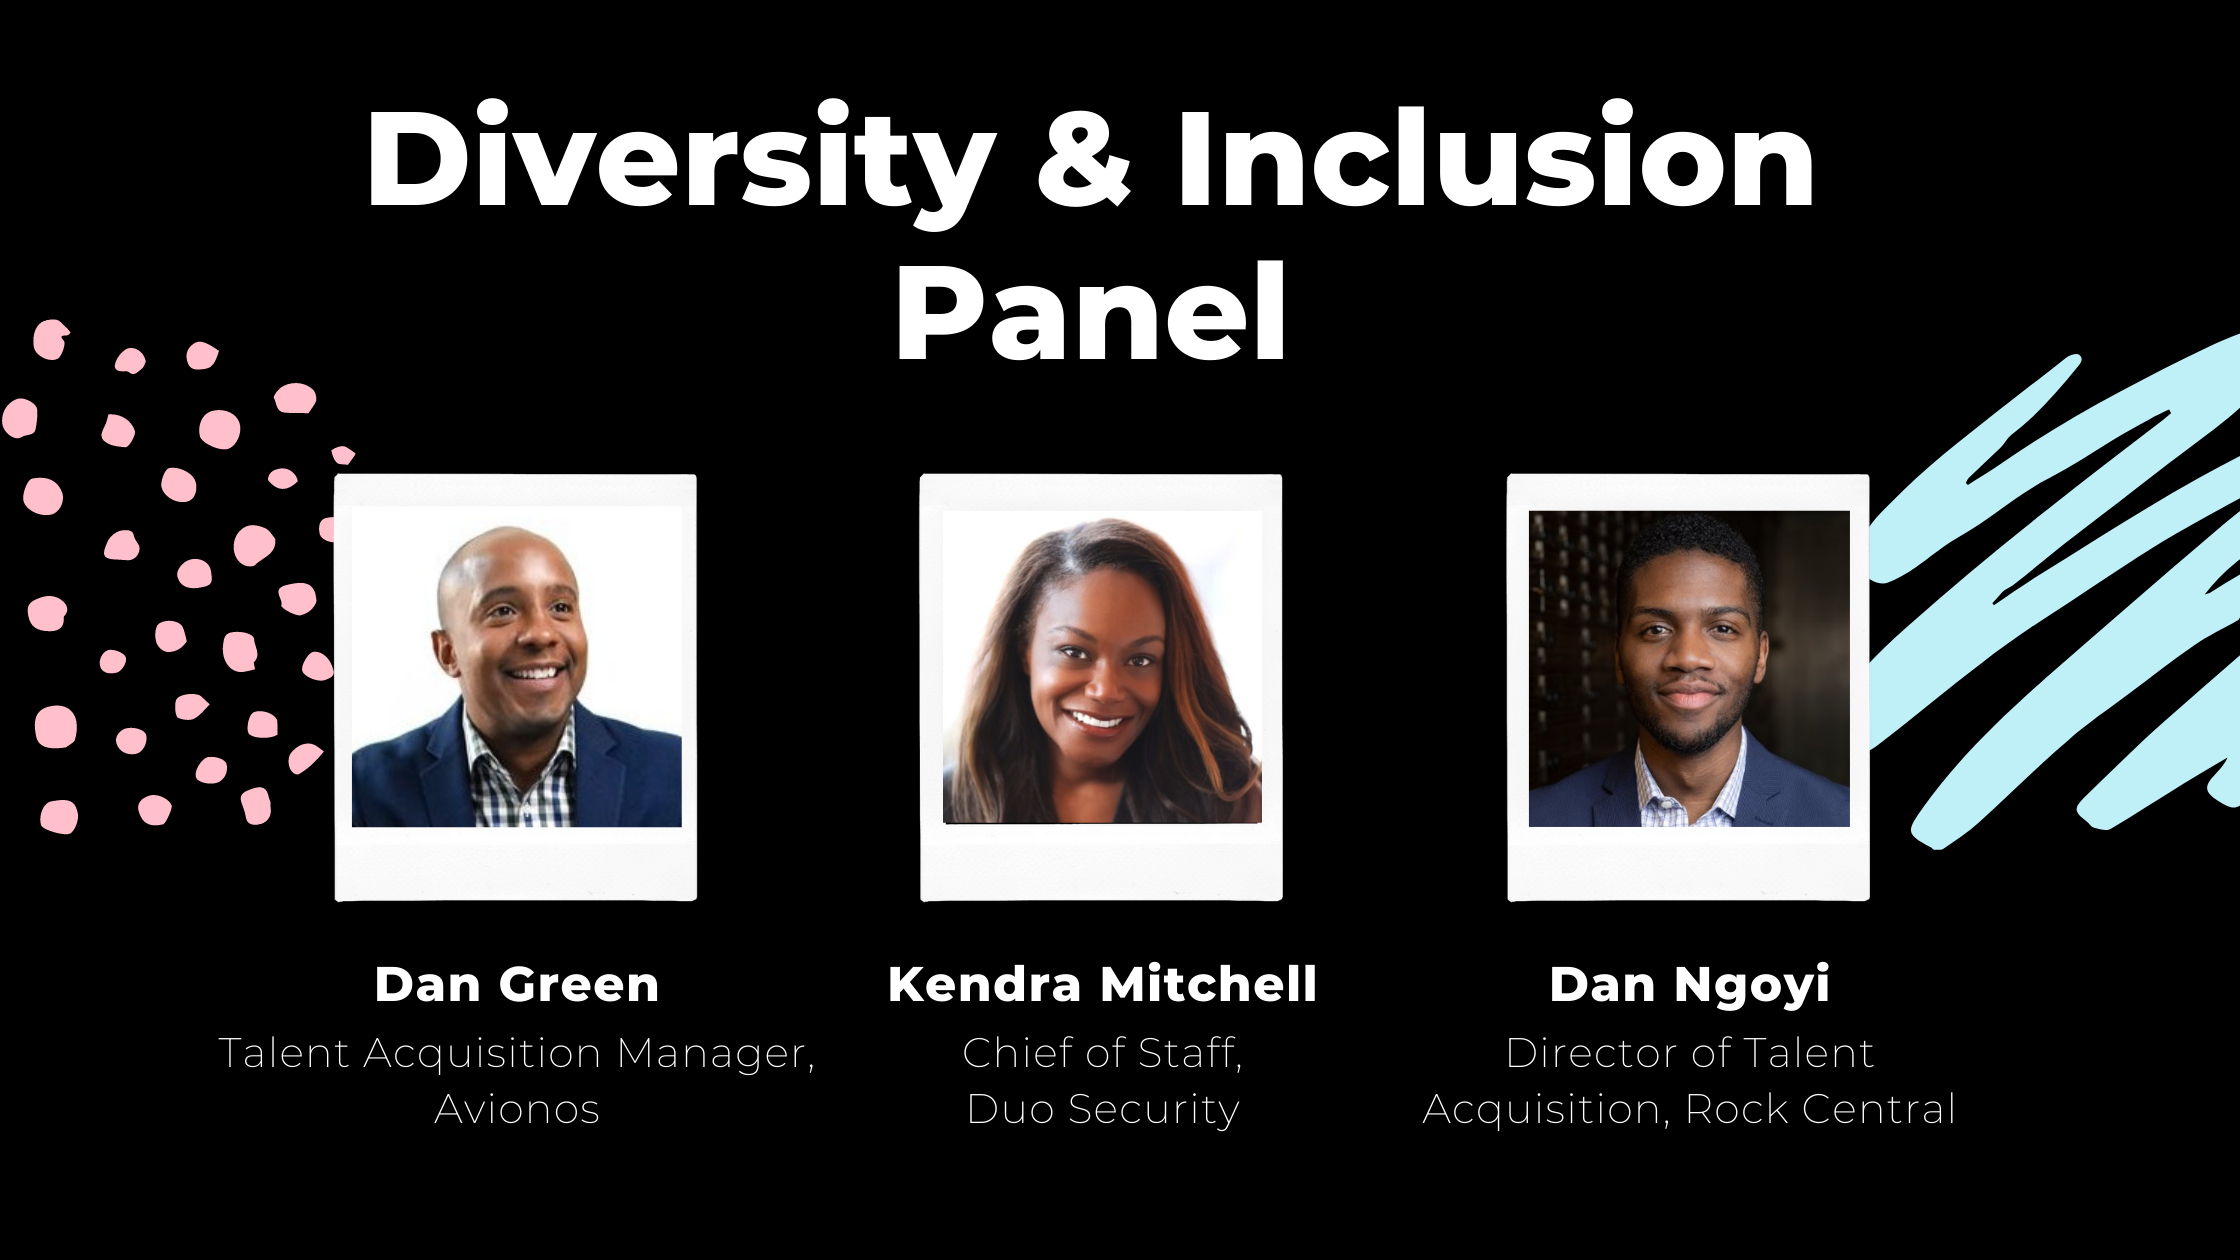 diversity and inclusion panel